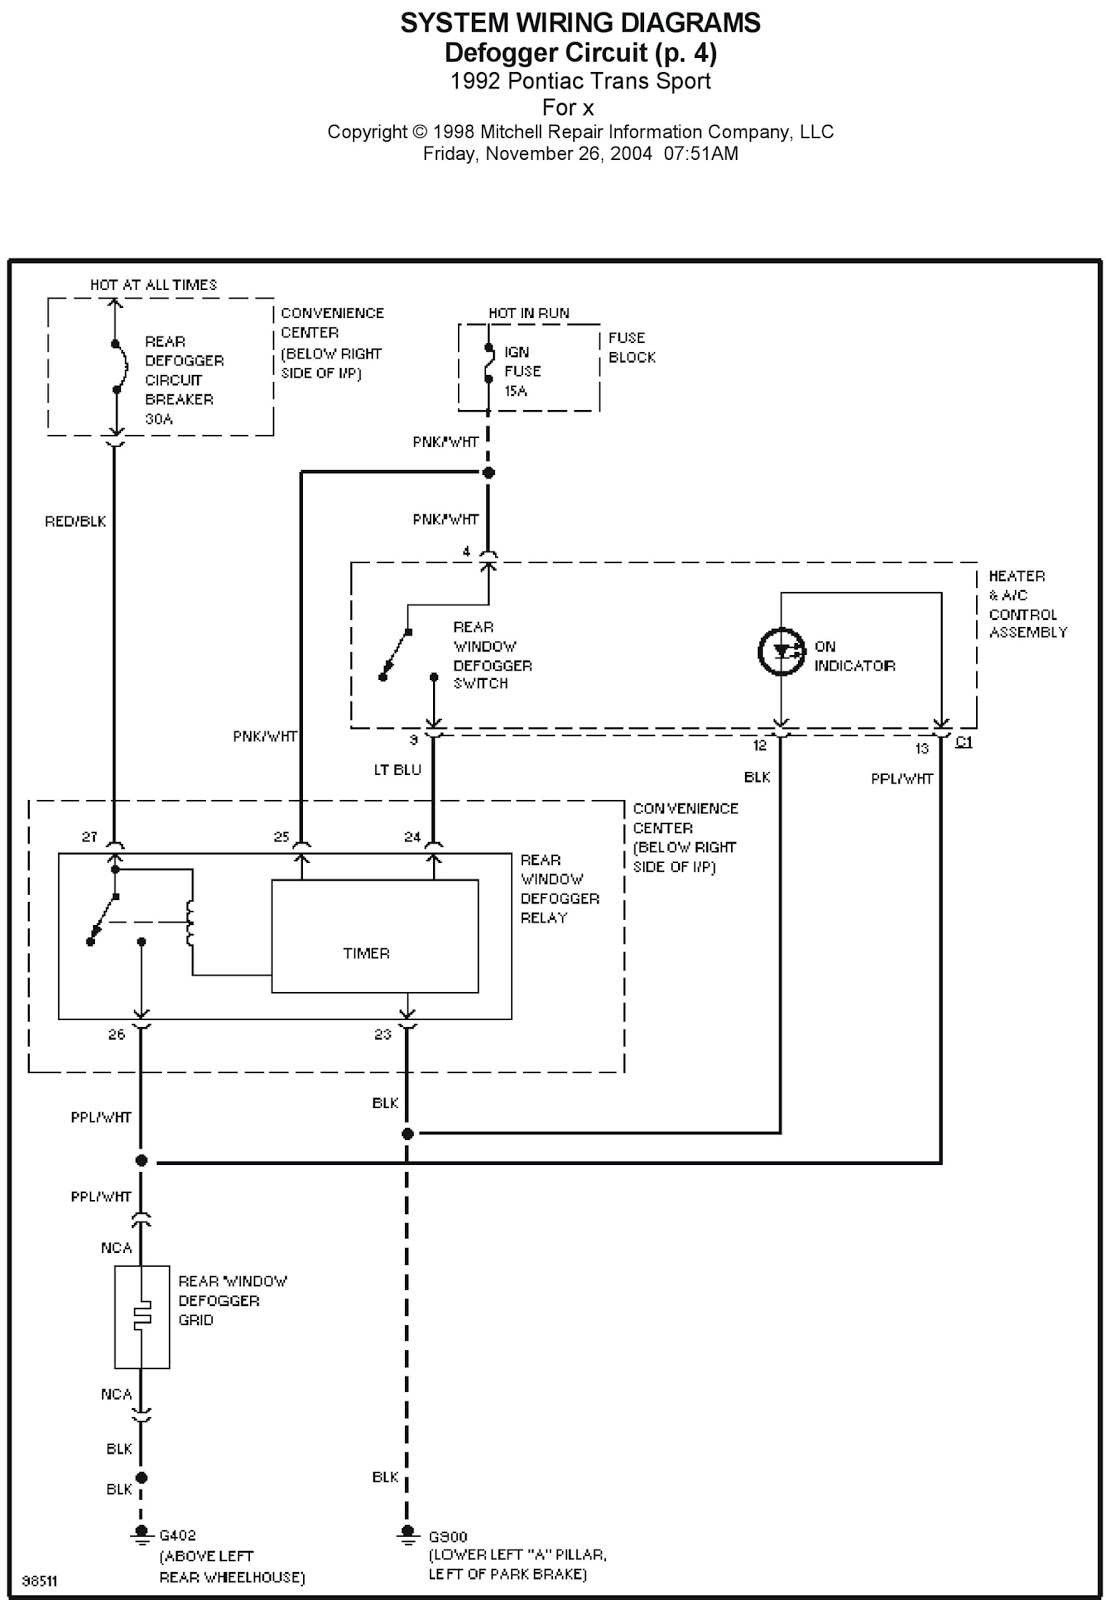 August 2011 Schematic Wiring Diagrams Solutions Diagram Pontiac Trans Sport 1992 Defogger Circuit System